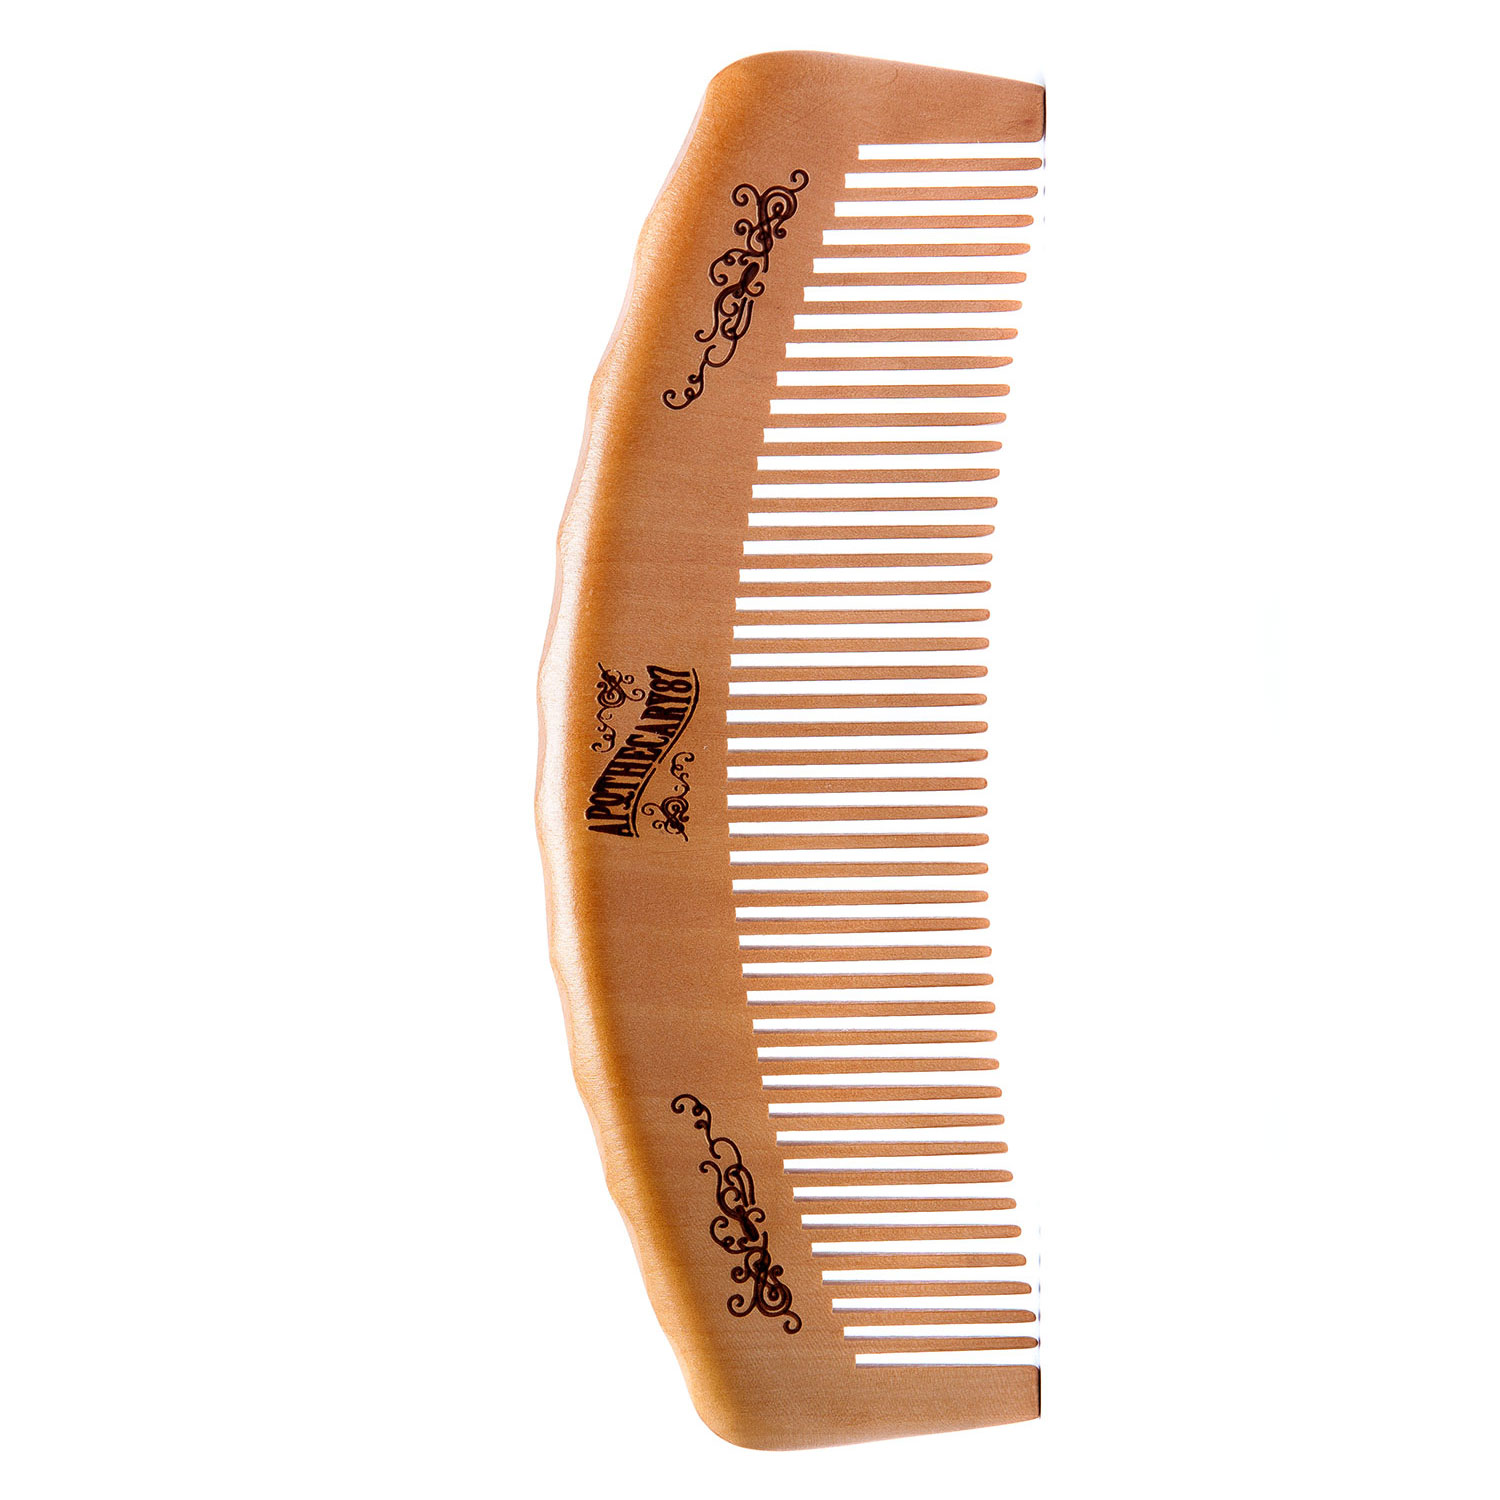 Apothecary87 Grooming - The Man Club Barber Comb -